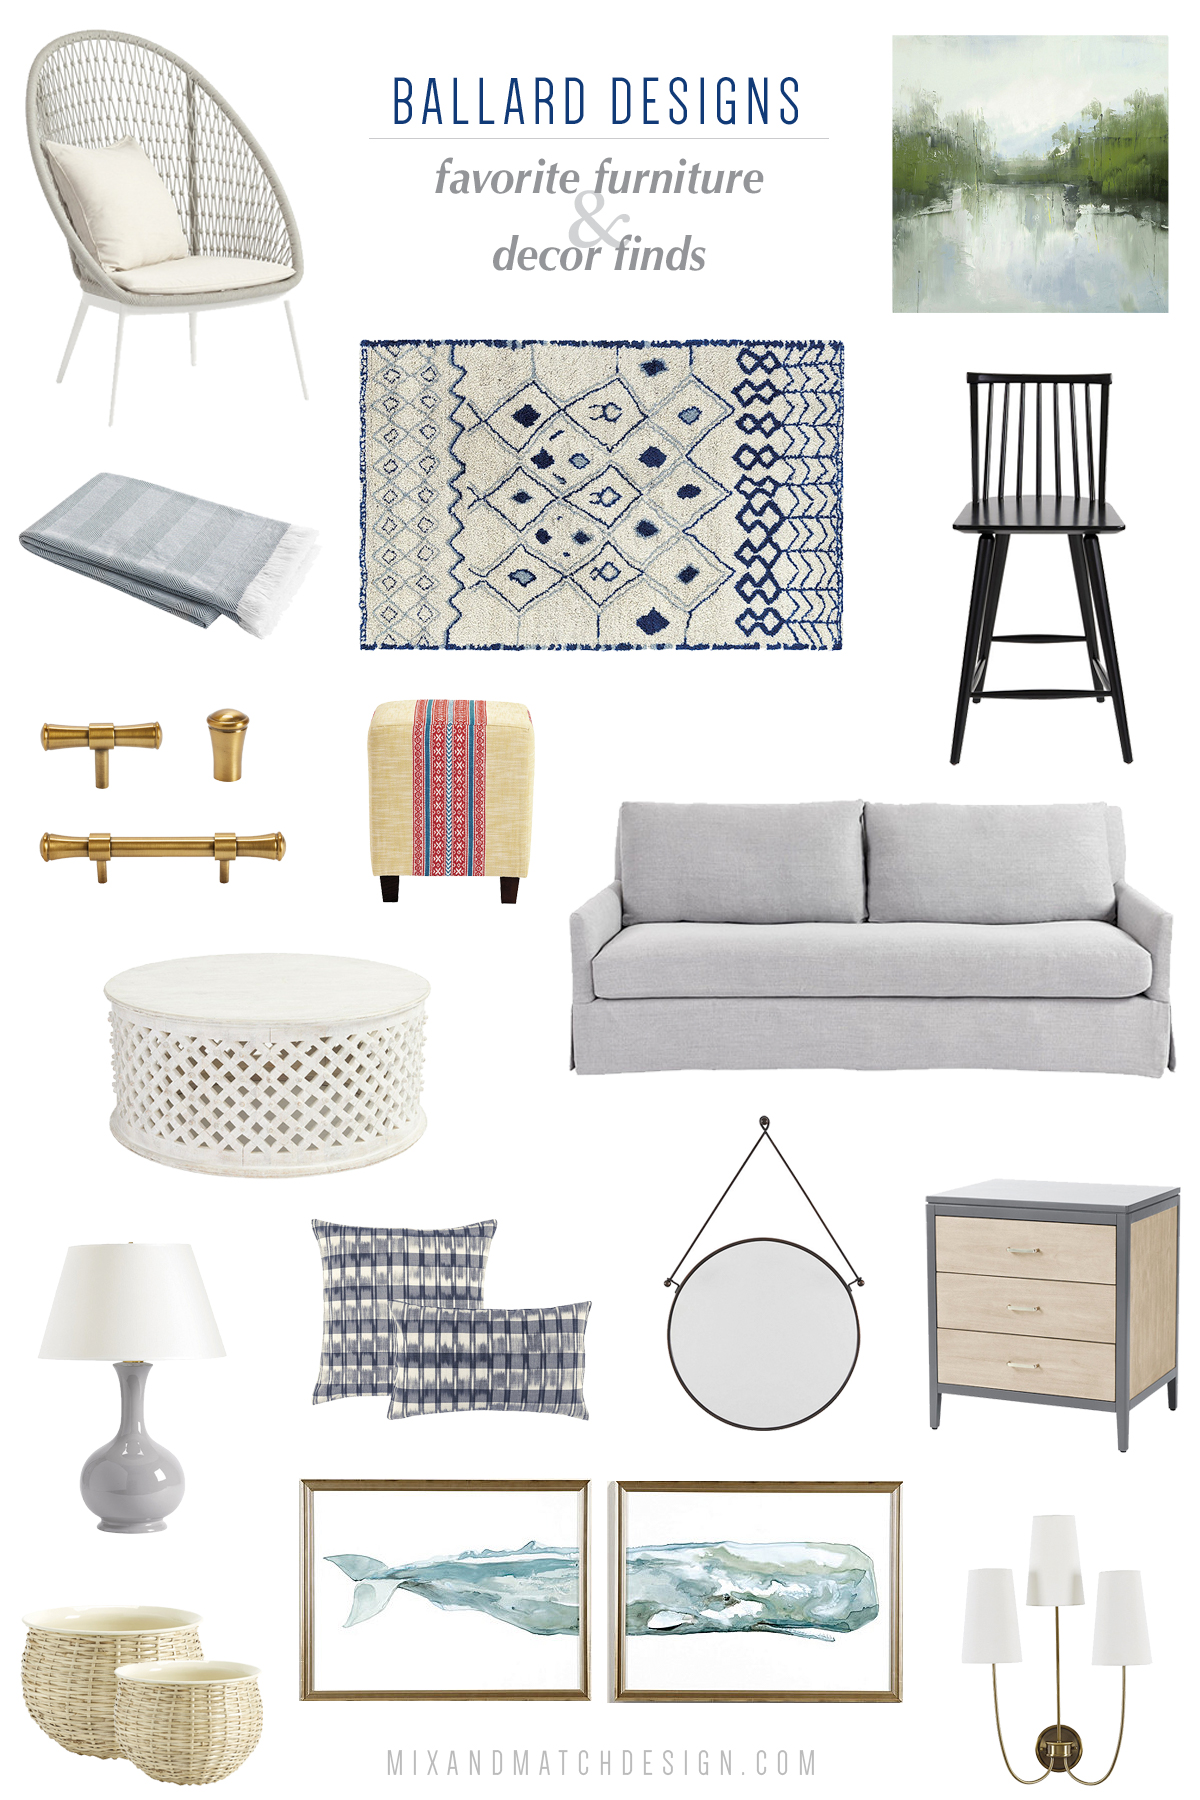 Are you a fan of Ballard Designs? They've got a beautiful collection of classic style furniture and home decor with a coastal twist. I rounded up my favorite pieces for your living room, dining room, bedroom, and more in this blog post. Click the image to take a look and get all the sources!